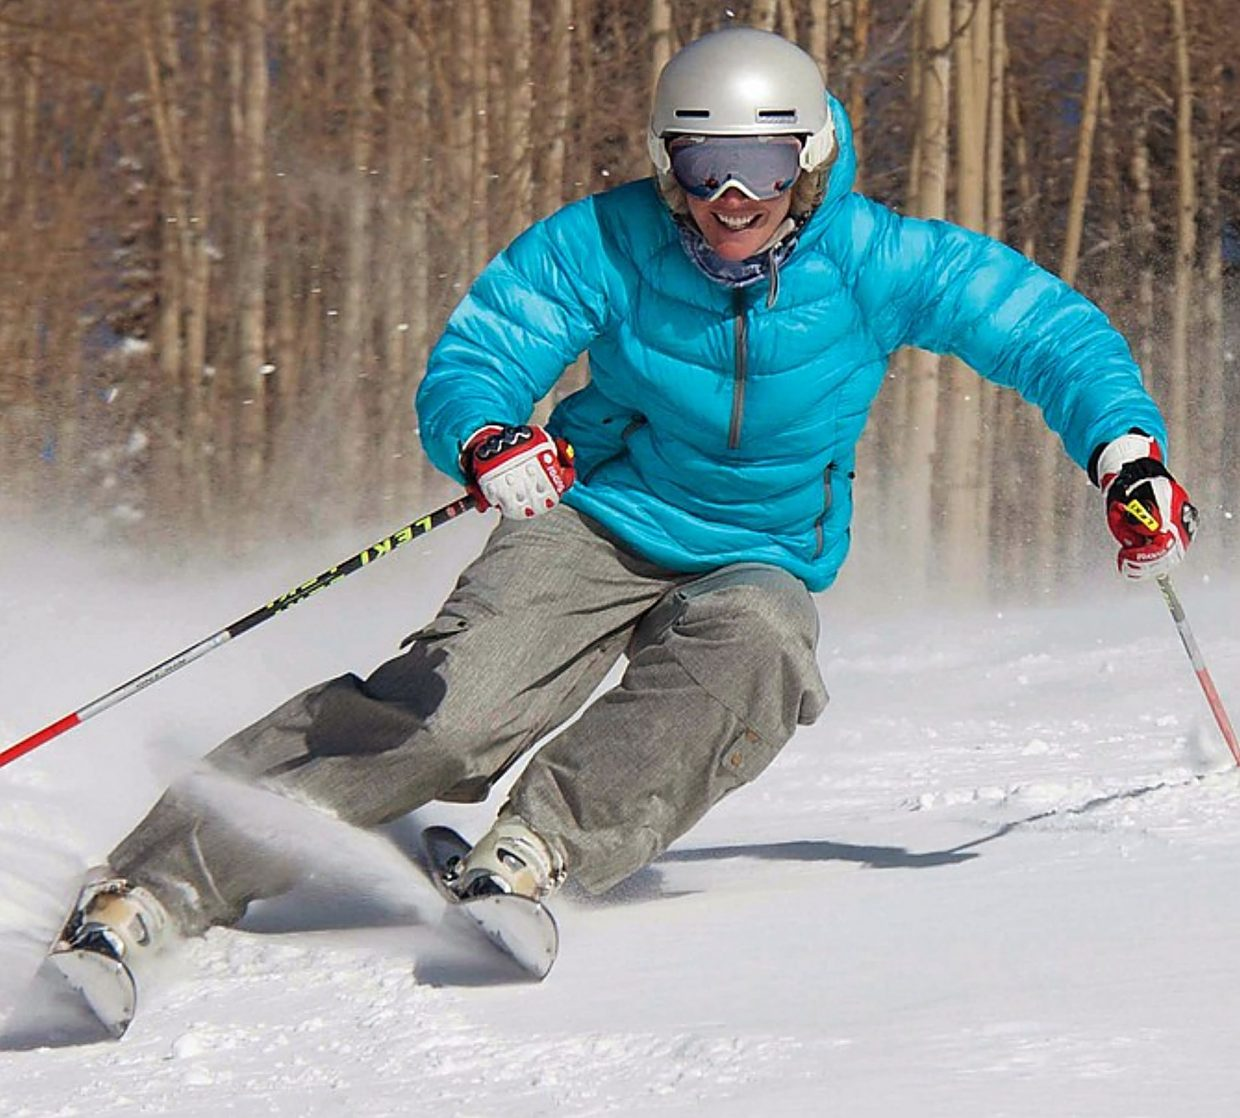 Caroline Lalive Carmichael, a California native who spent 13 years on the U.S. Ski Team after moving to Steamboat Springs.